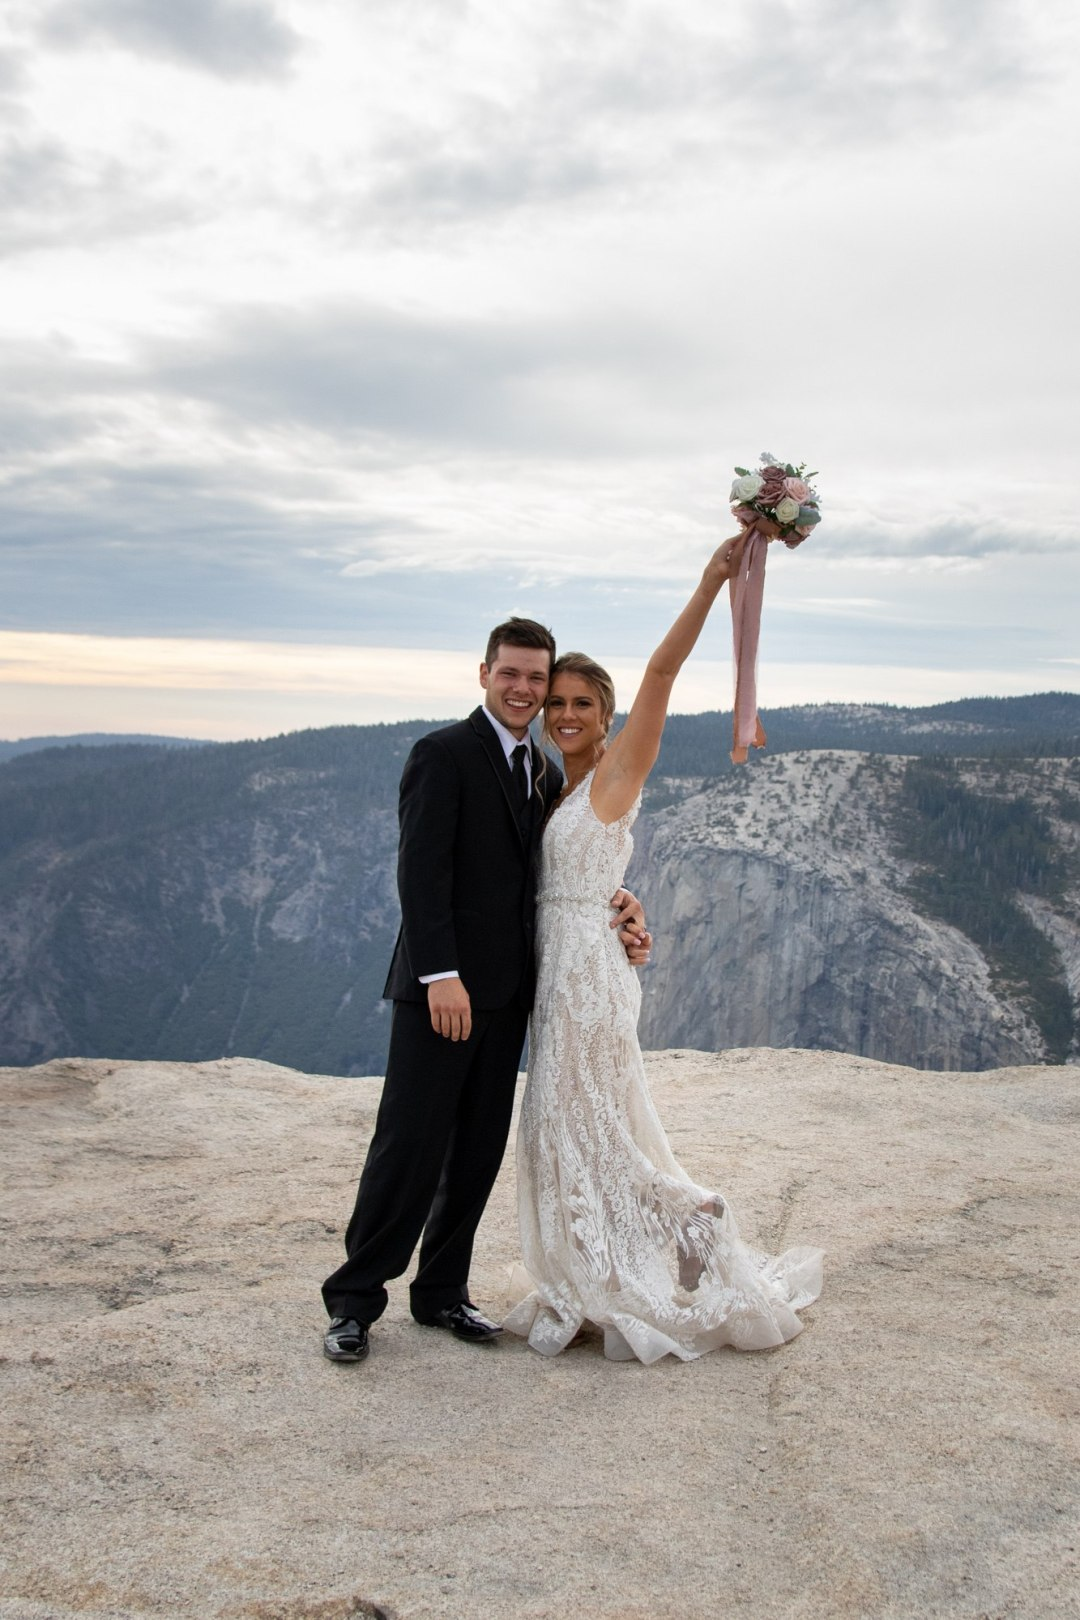 Bride and groom celebrate after Taft Point wedding ceremony.